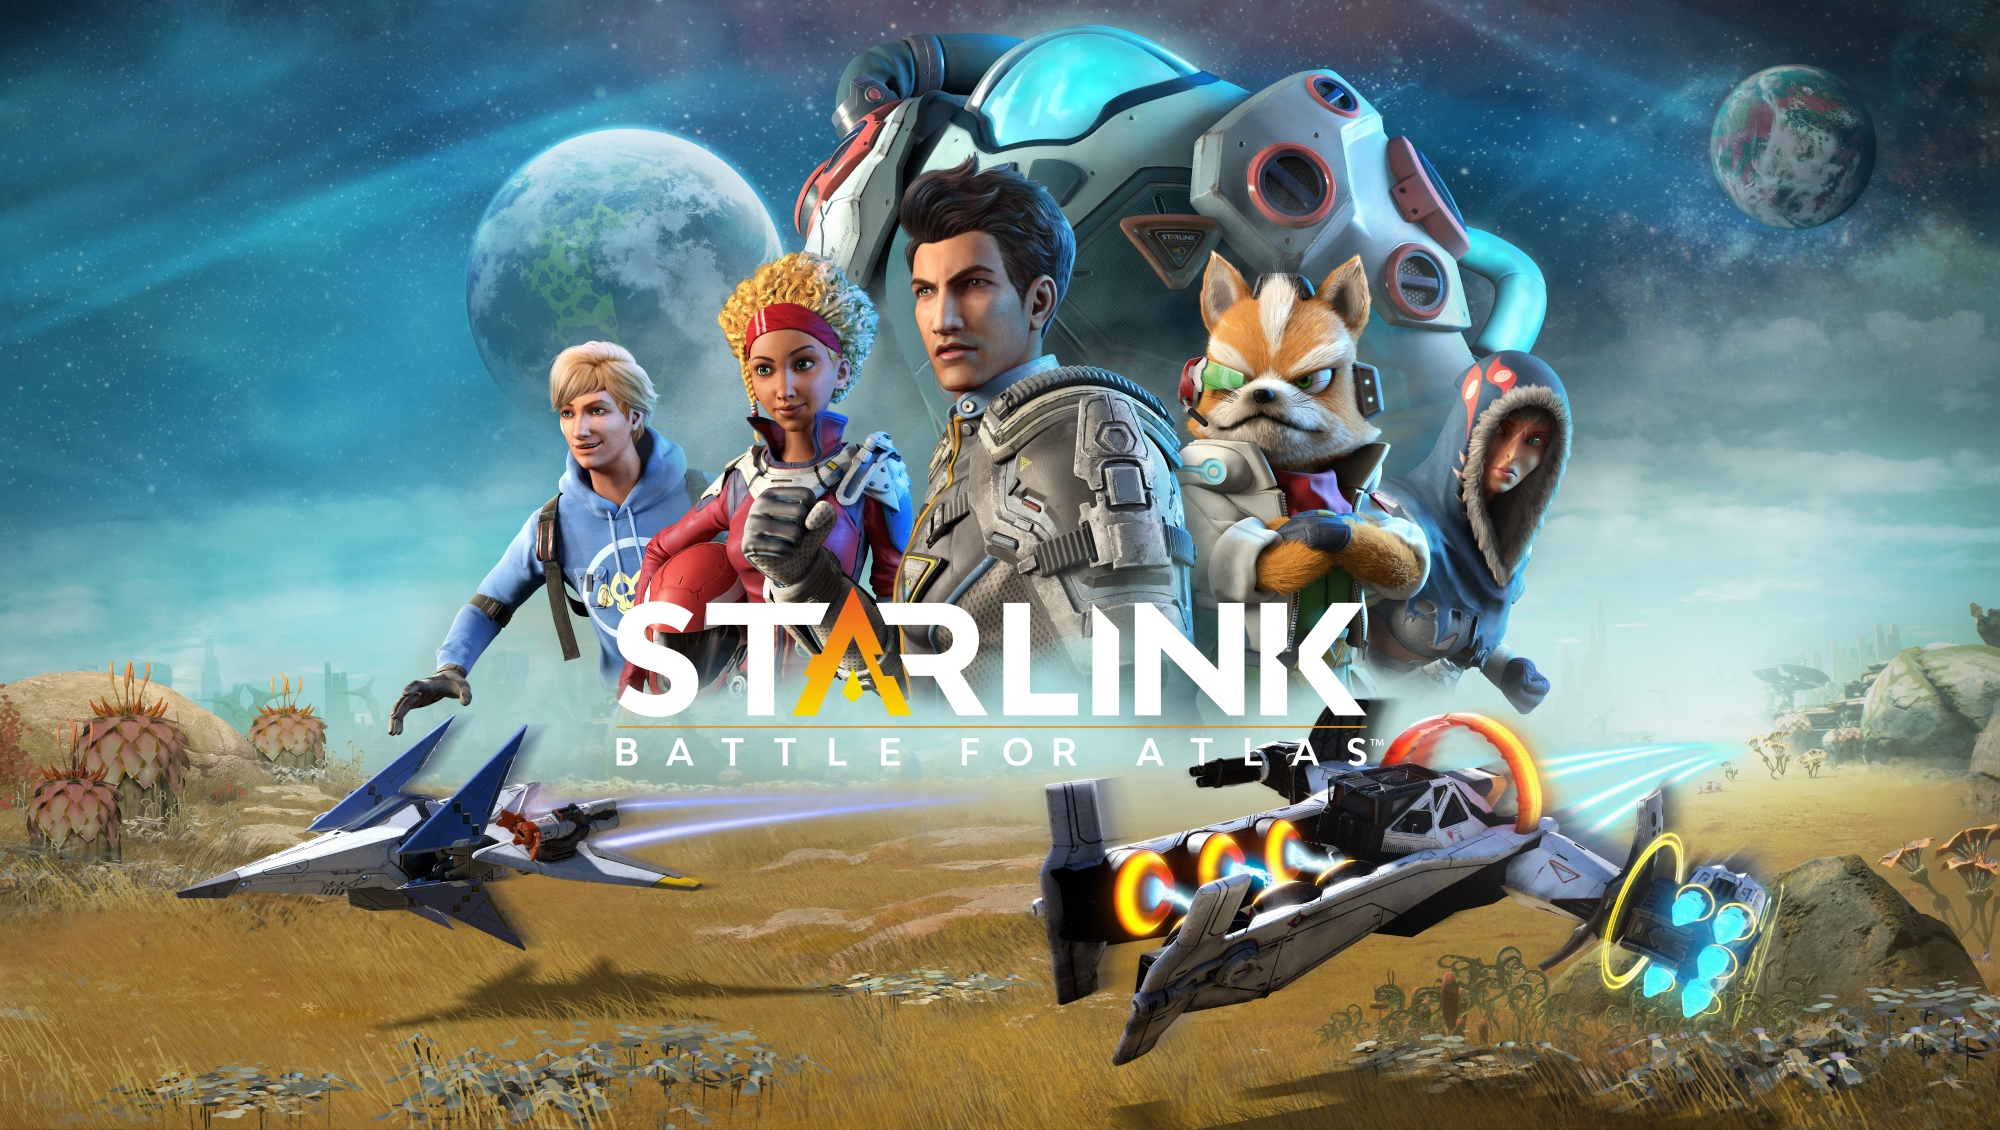 Starlink: Battle For Atlas hands-on preview and interview – 'it's not really a kids' game we're making'